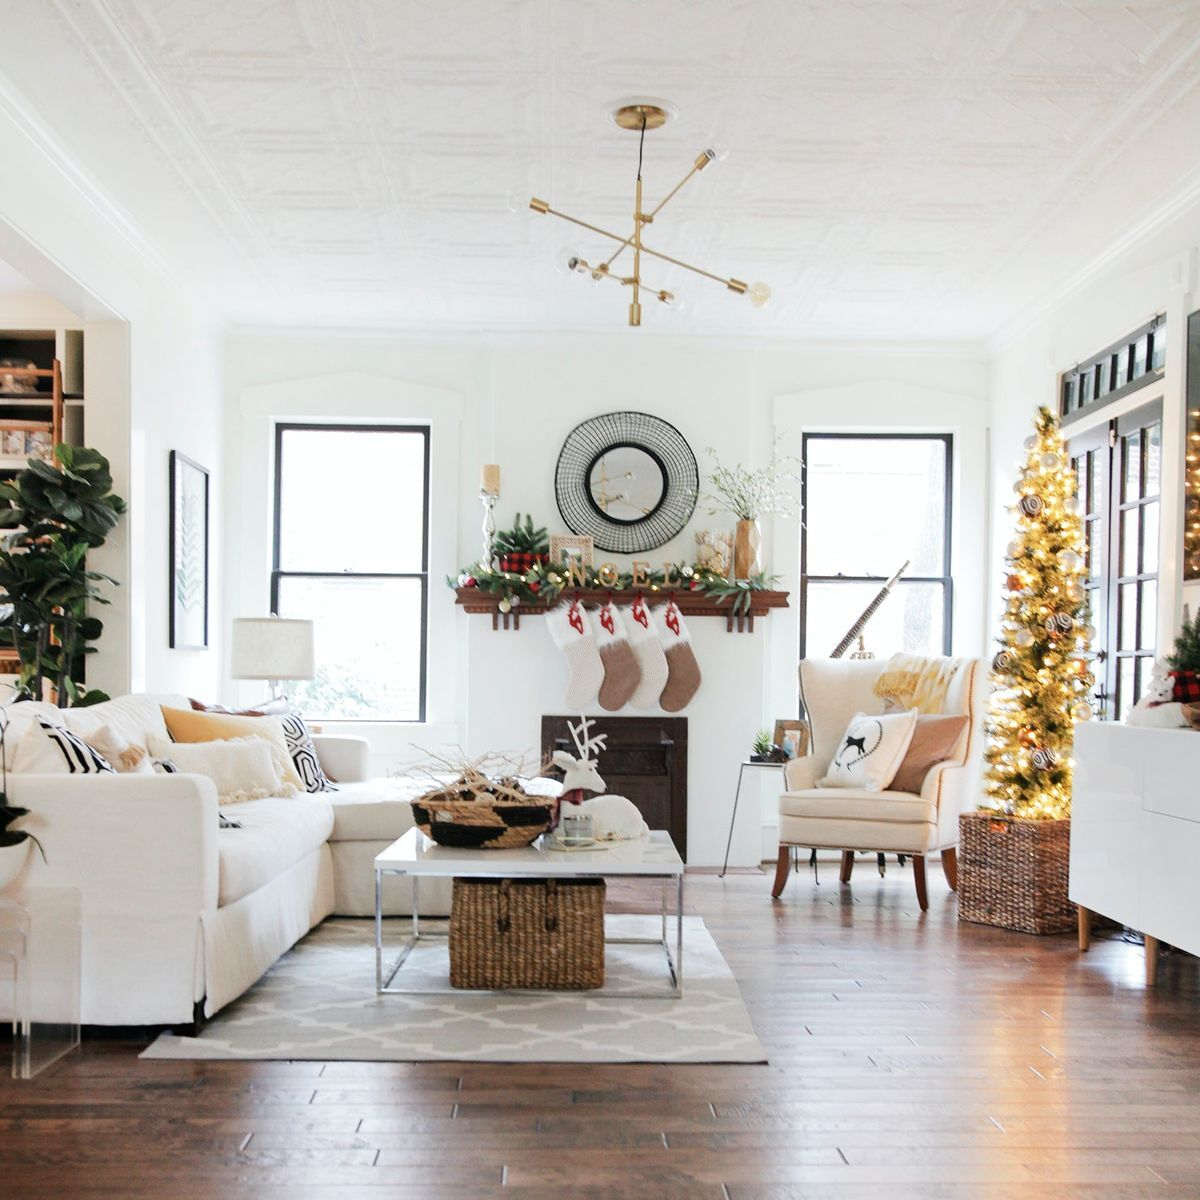 Create a Warm and Inviting Home for the Holidays